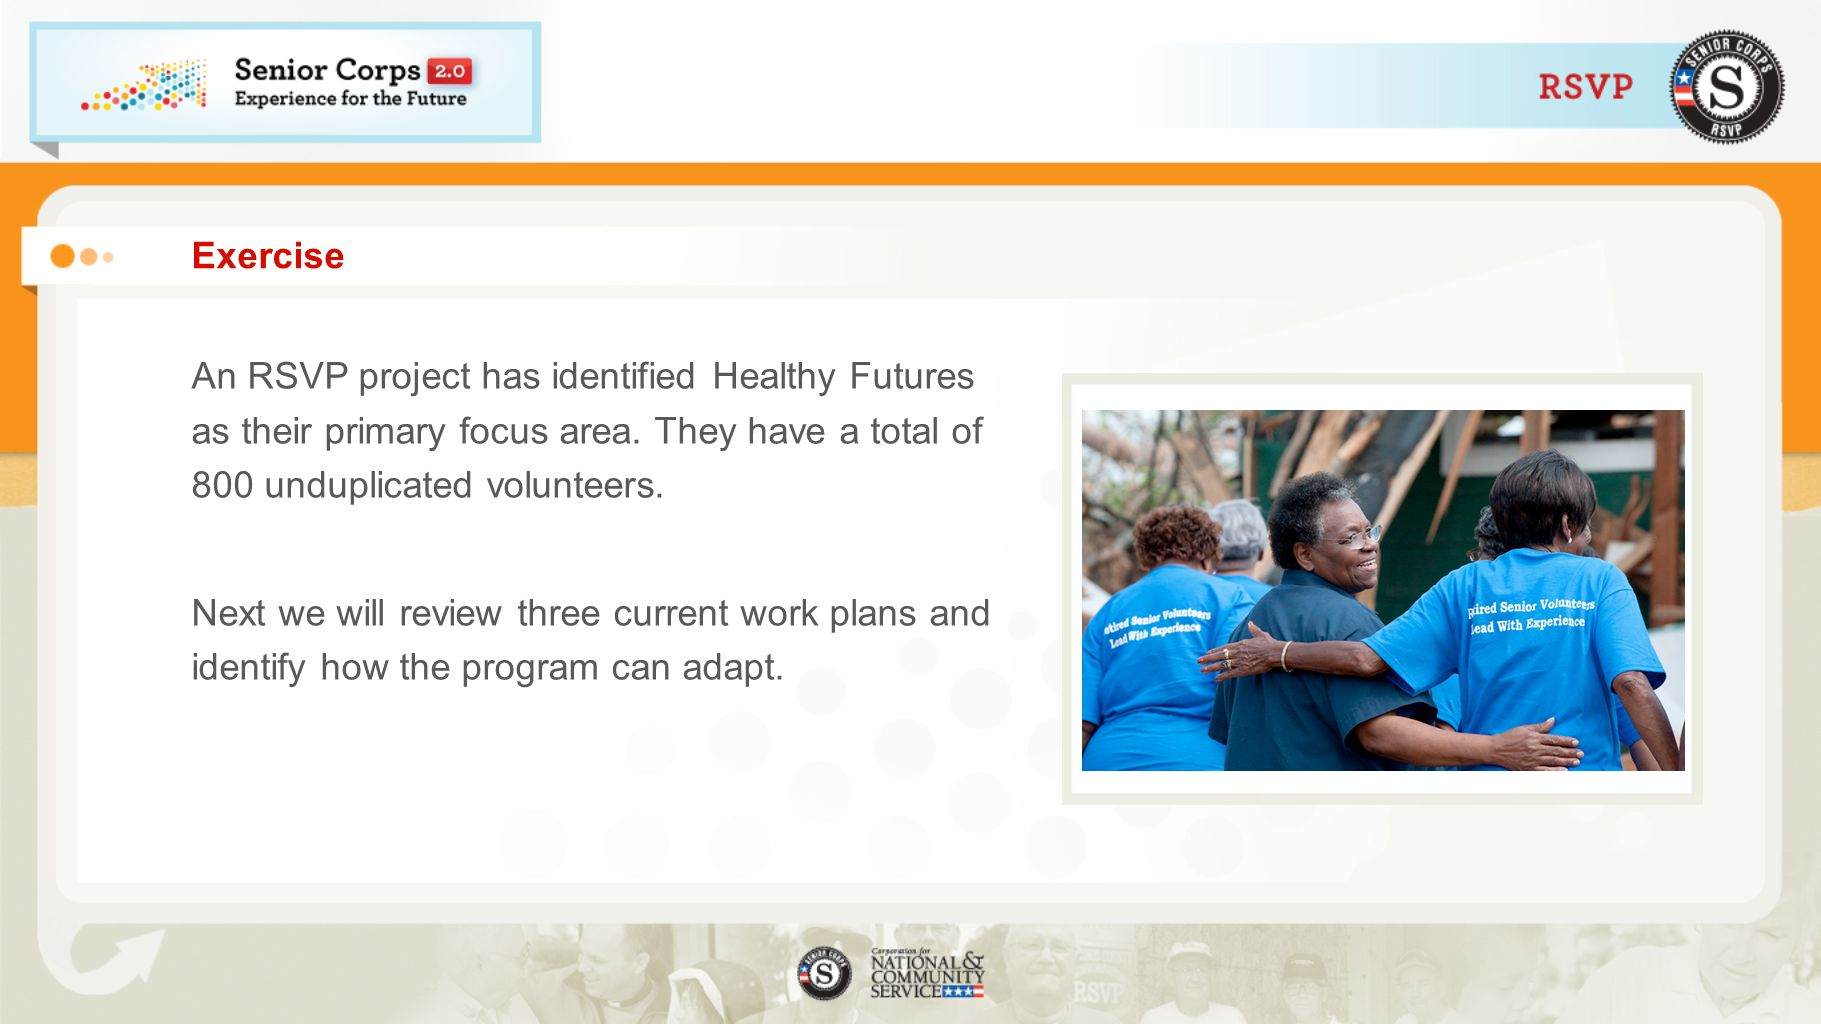 Exercise An RSVP project has identified Healthy Futures as their primary focus area. They have a total of 800 unduplicated volunteers.